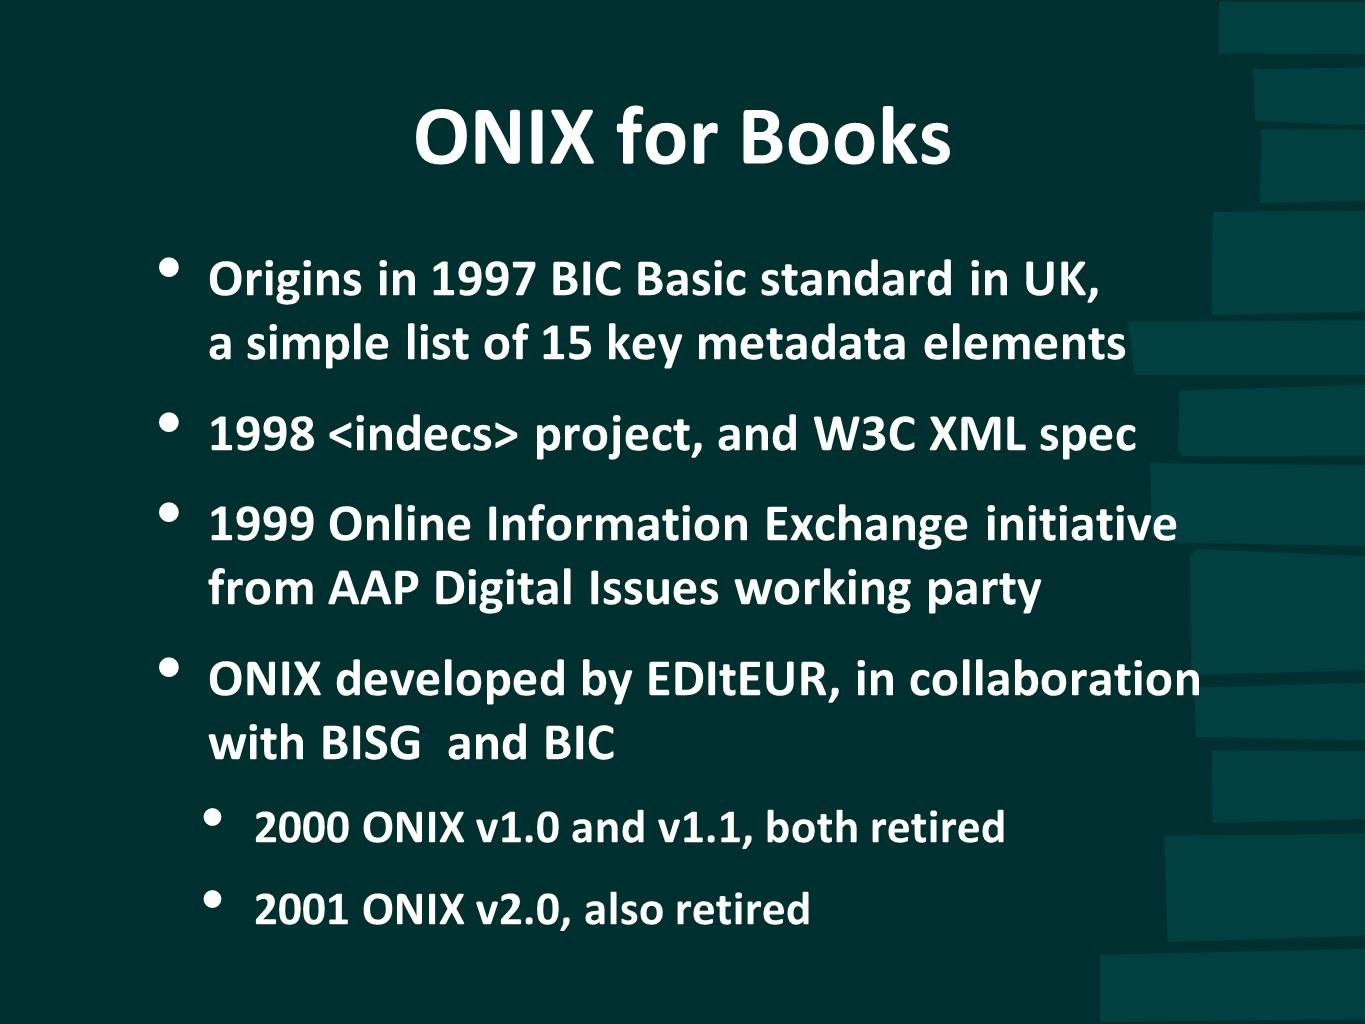 ONIX for Books Current status managed by EDItEUR, and free to use June 2003 ONIX v2.1 – most widely deployed April 2009 ONIX v3.0 – growing in importance widely used in North America, Western Europe, Japan, Russia, parts of Eastern Europe, with early implementations in China and Egypt used by small and large organizations alike supported by many off-the-shelf applications and services for publishers